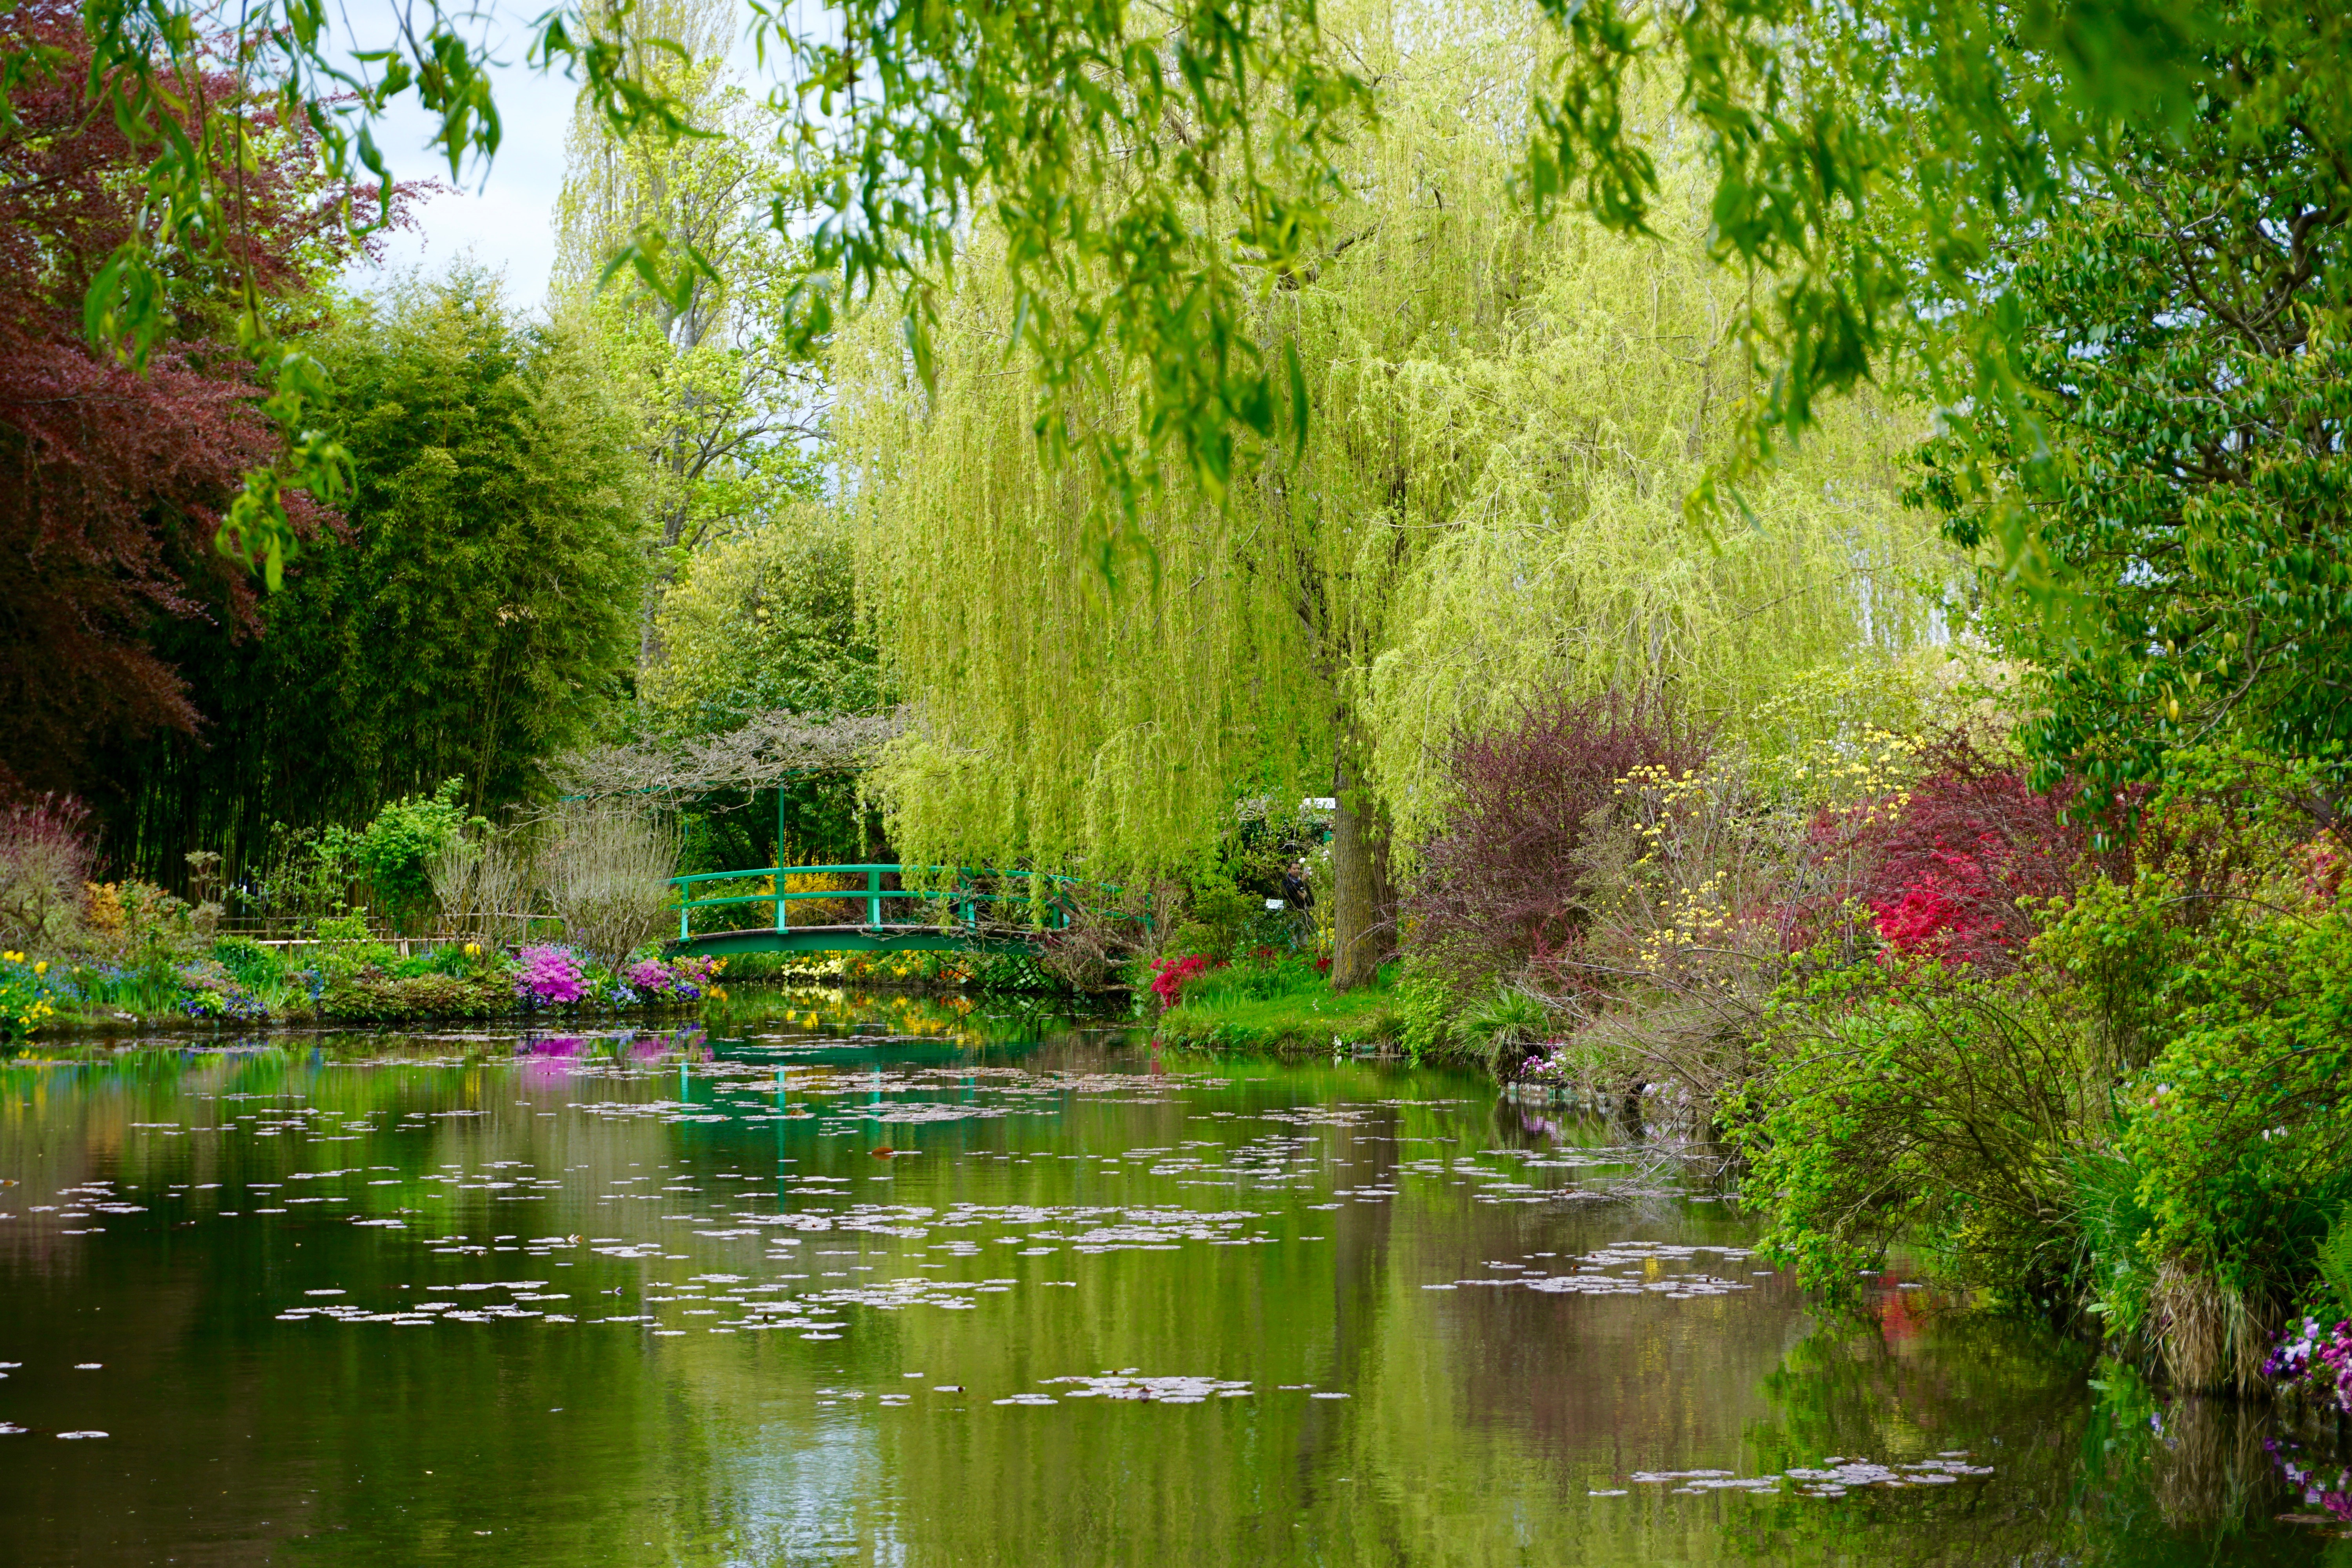 thee actual lily pond, inspiration for the painting